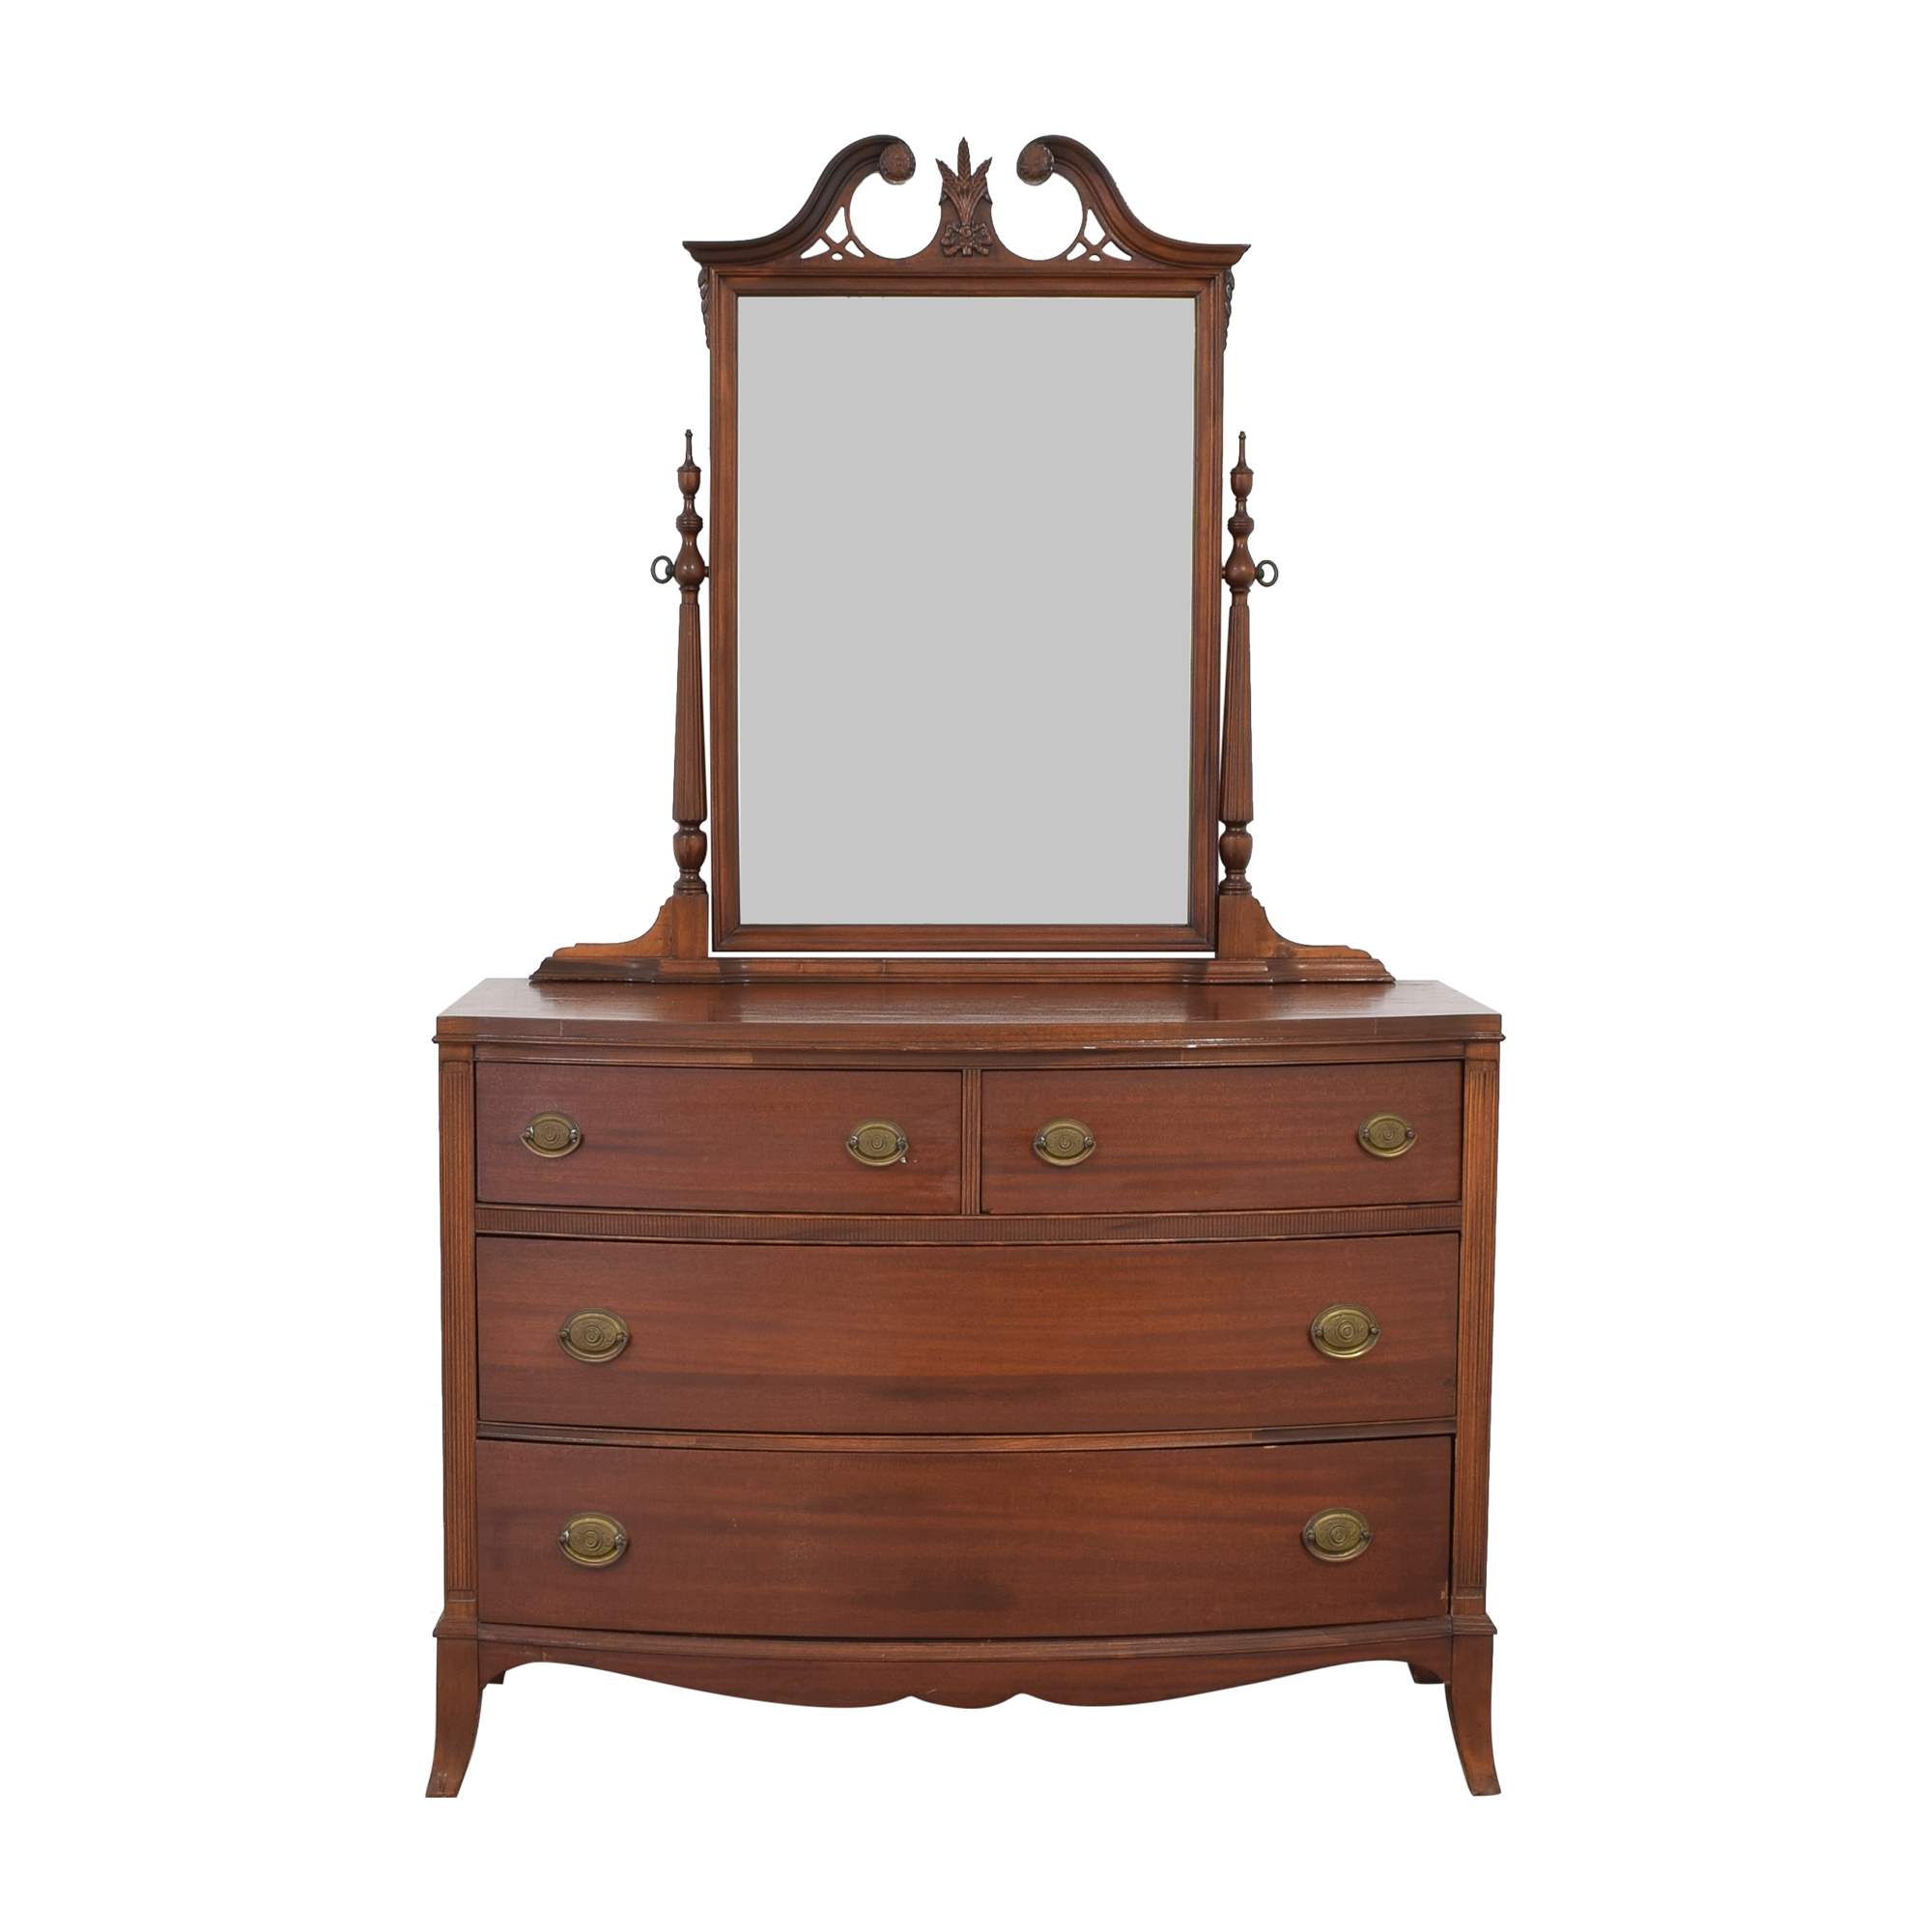 Vintage Wooden Dresser with Mirror for sale